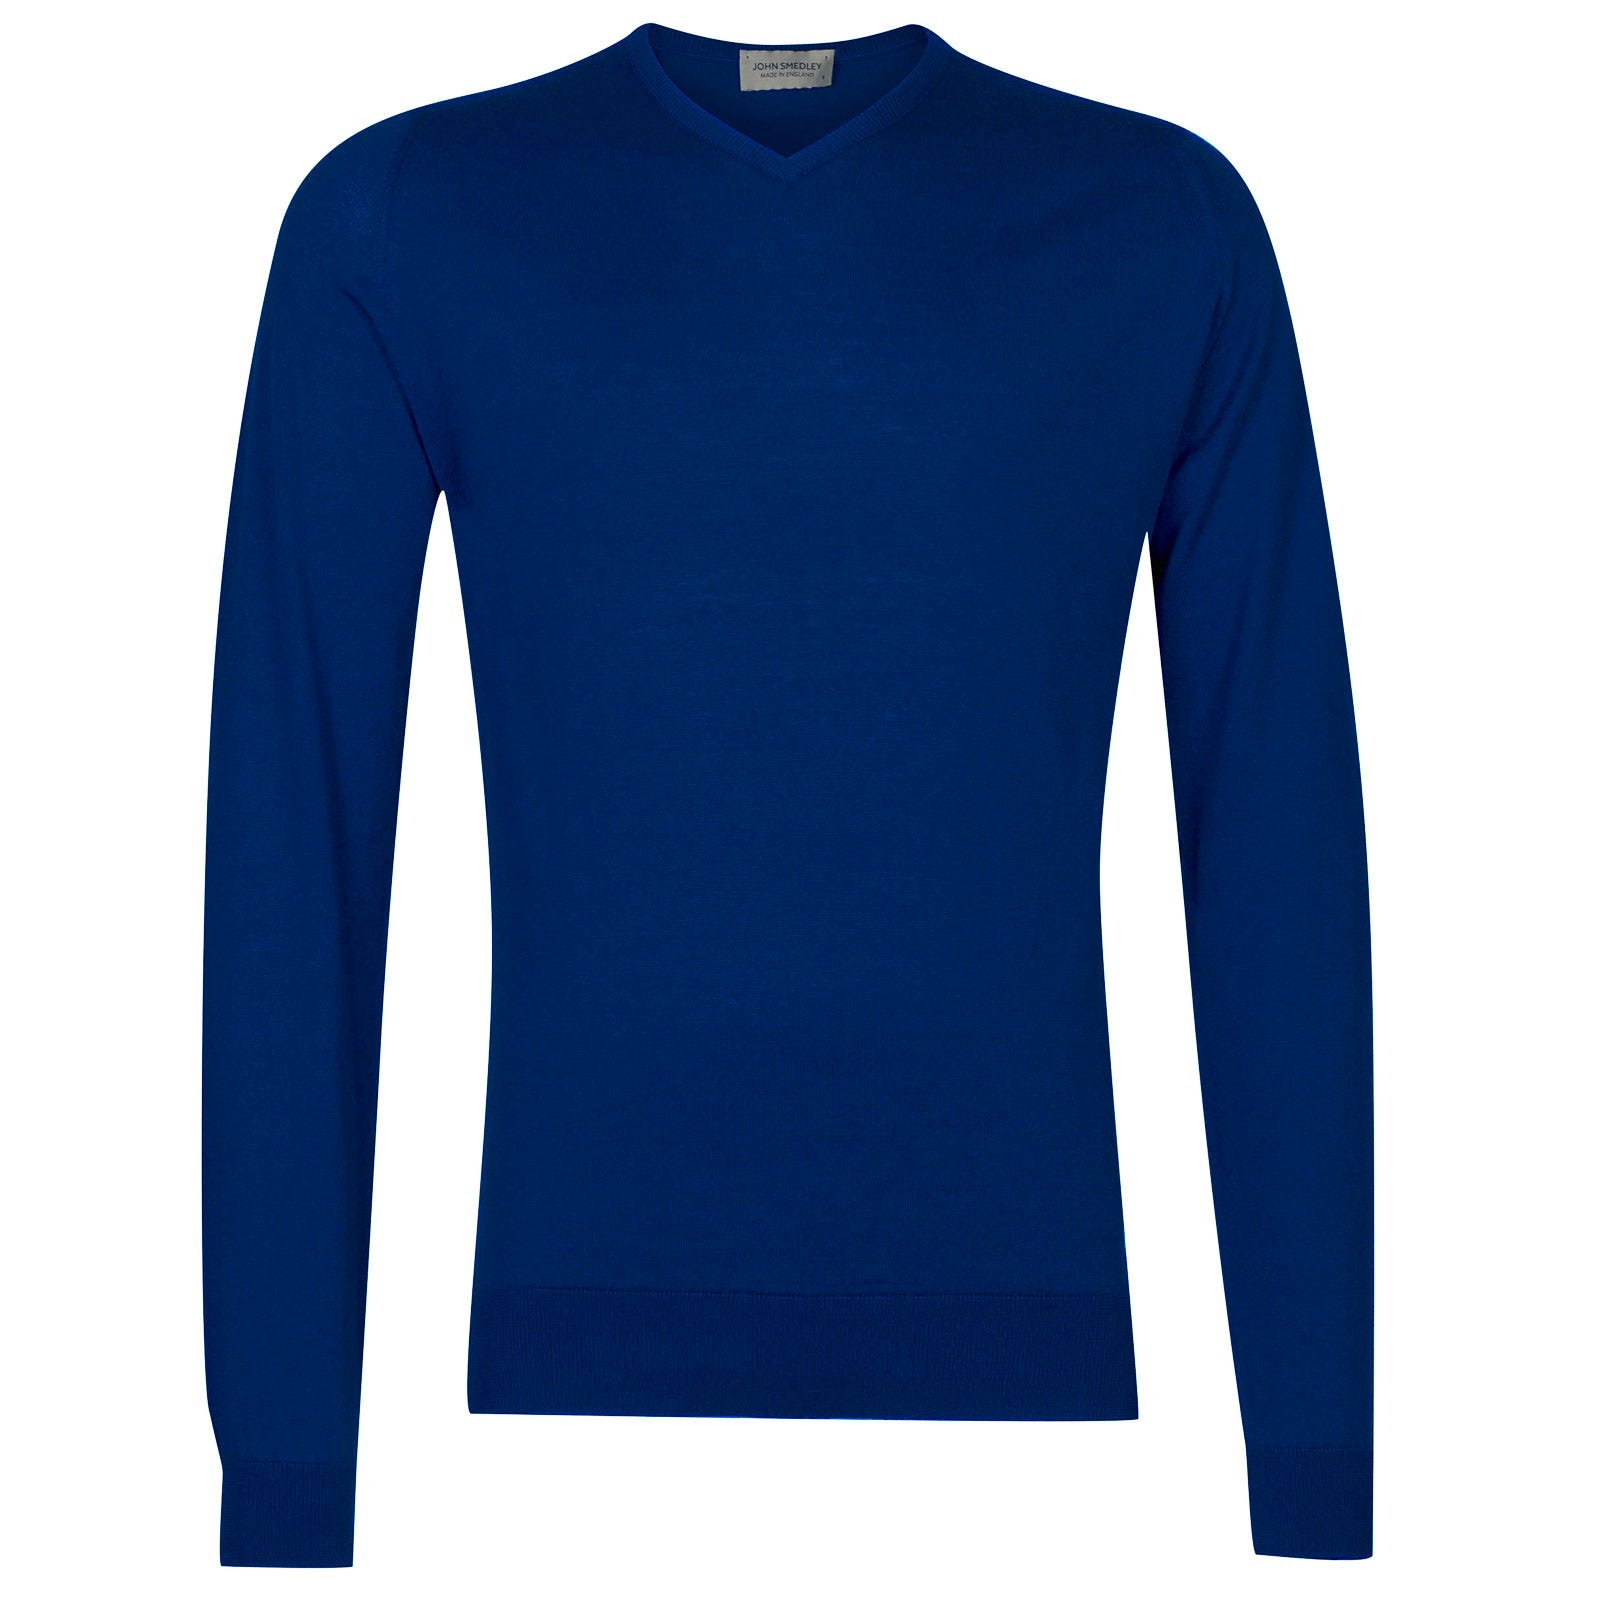 John Smedley Aydon Sea Island Cotton Pullover in Coniston Blue-S